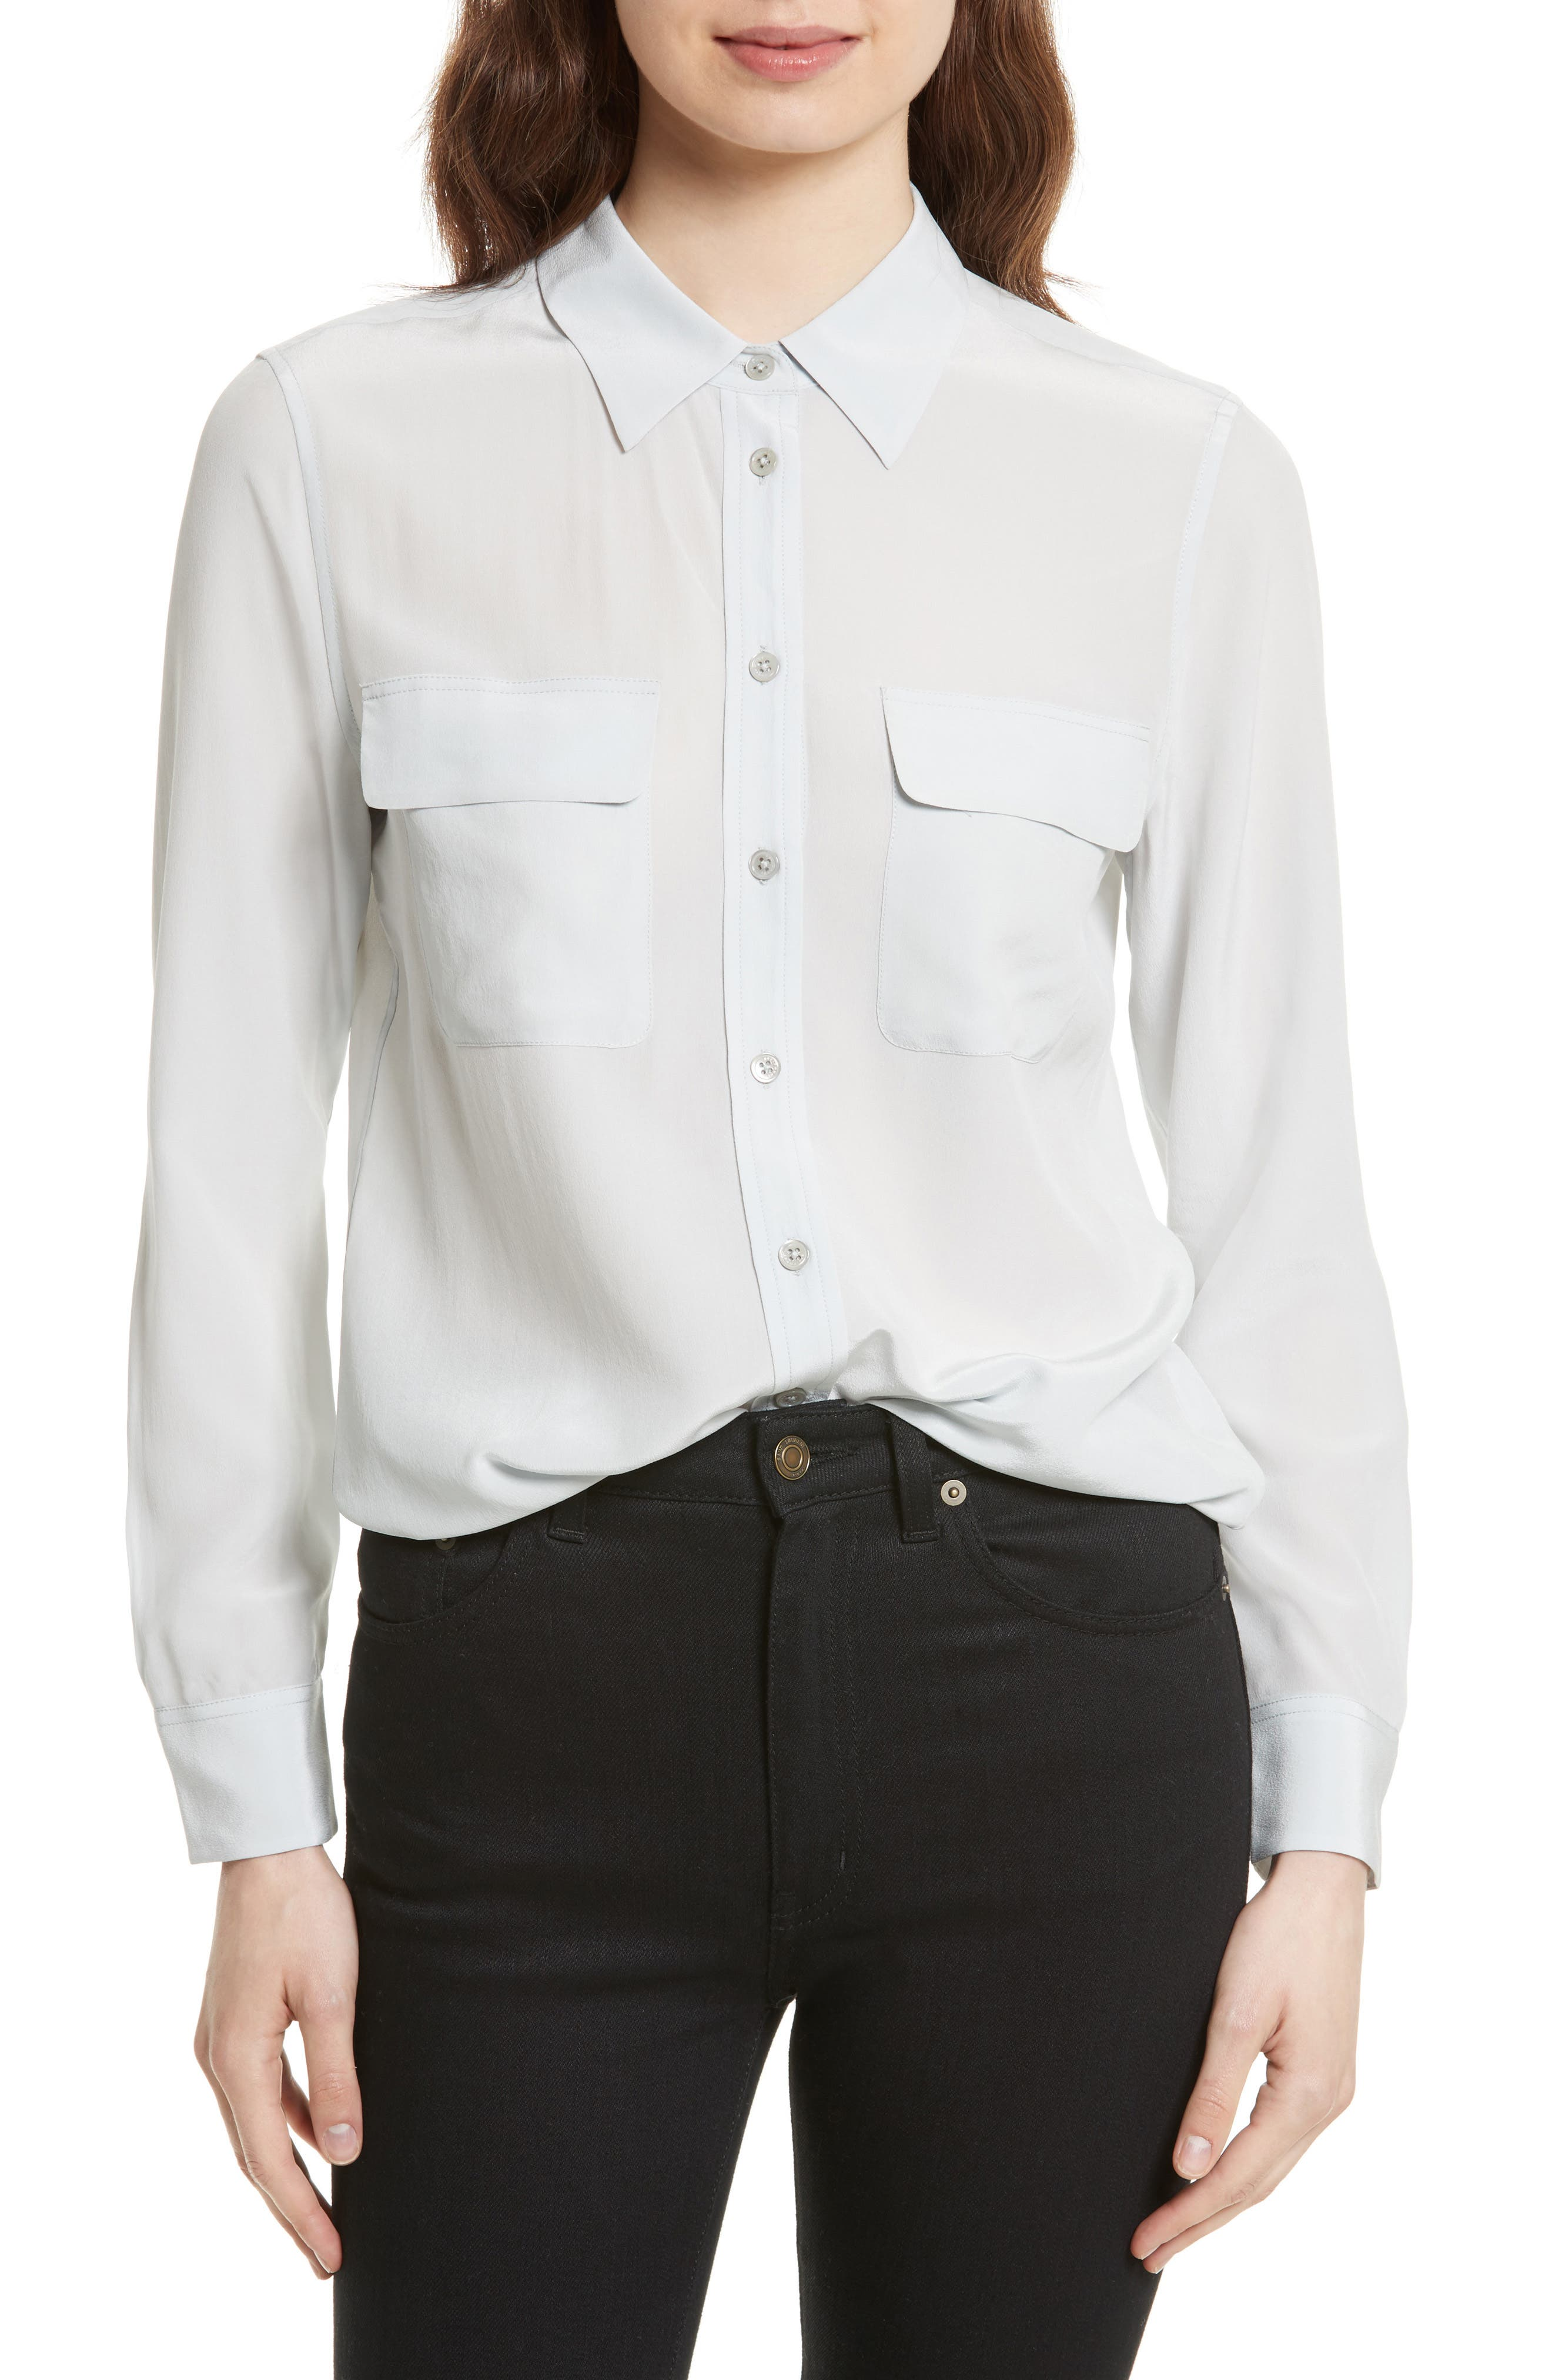 Alternate Image 1 Selected - Equipment 'Slim Signature' Silk Shirt